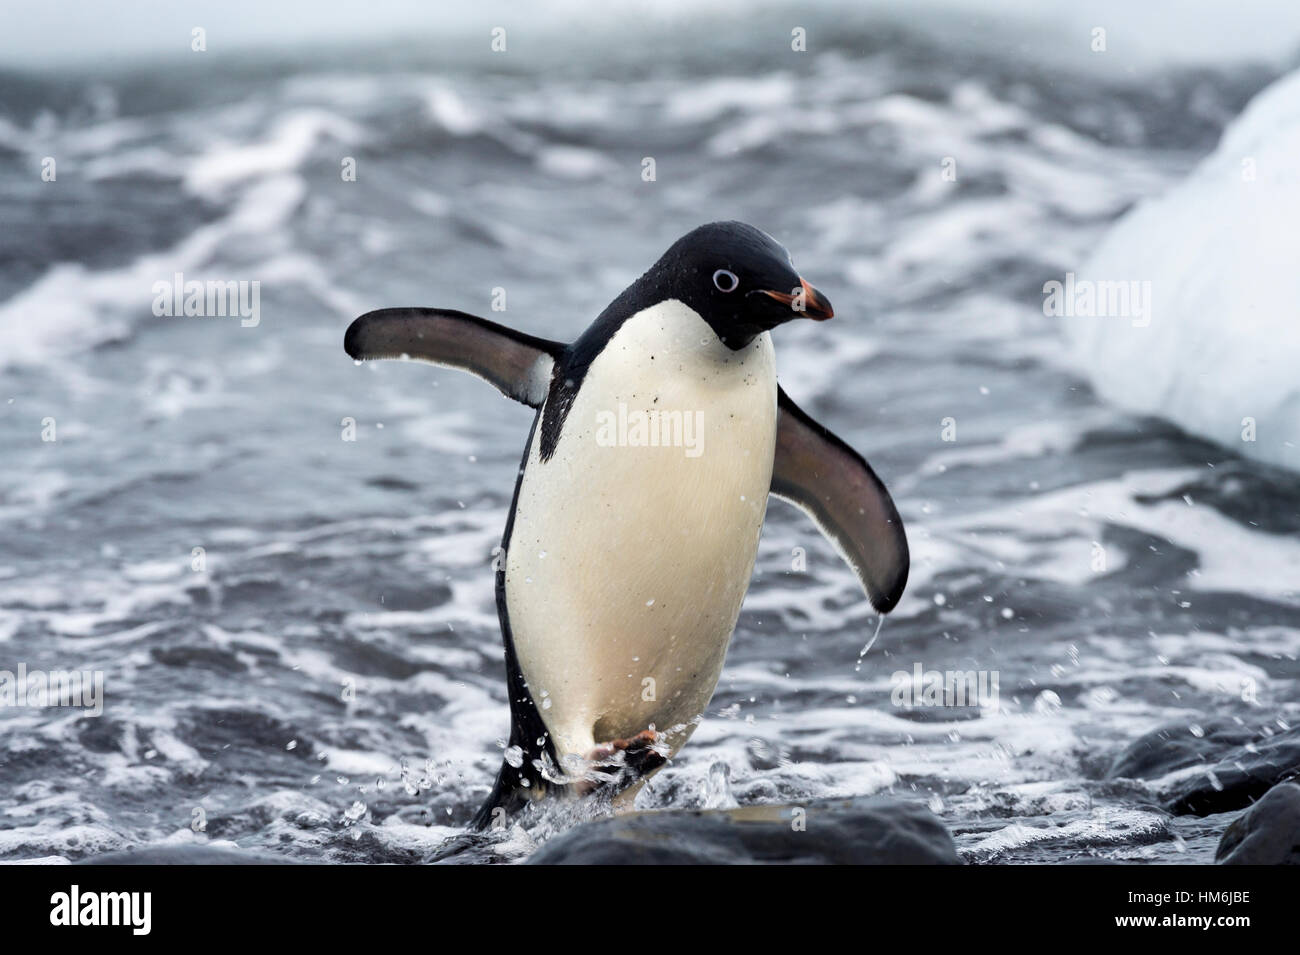 An Adelie Penguin marches from the surf onto a rocky beach after feeding. - Stock Image